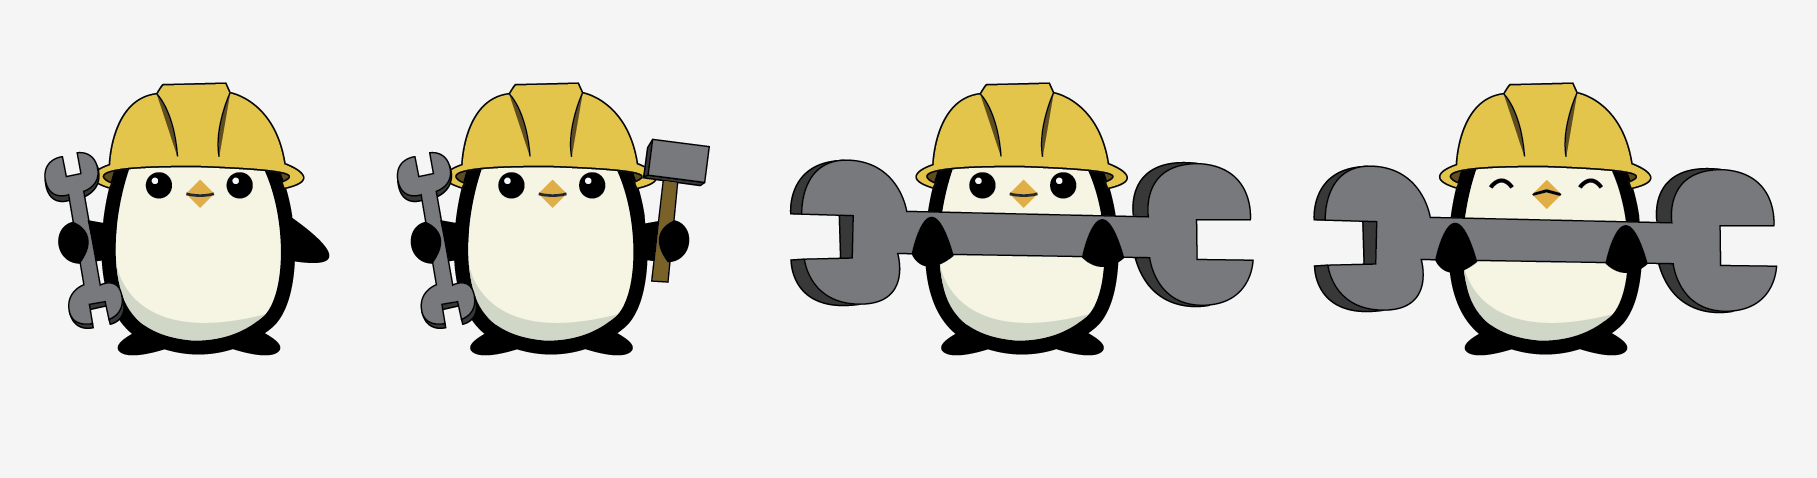 worker_pepper_penguin